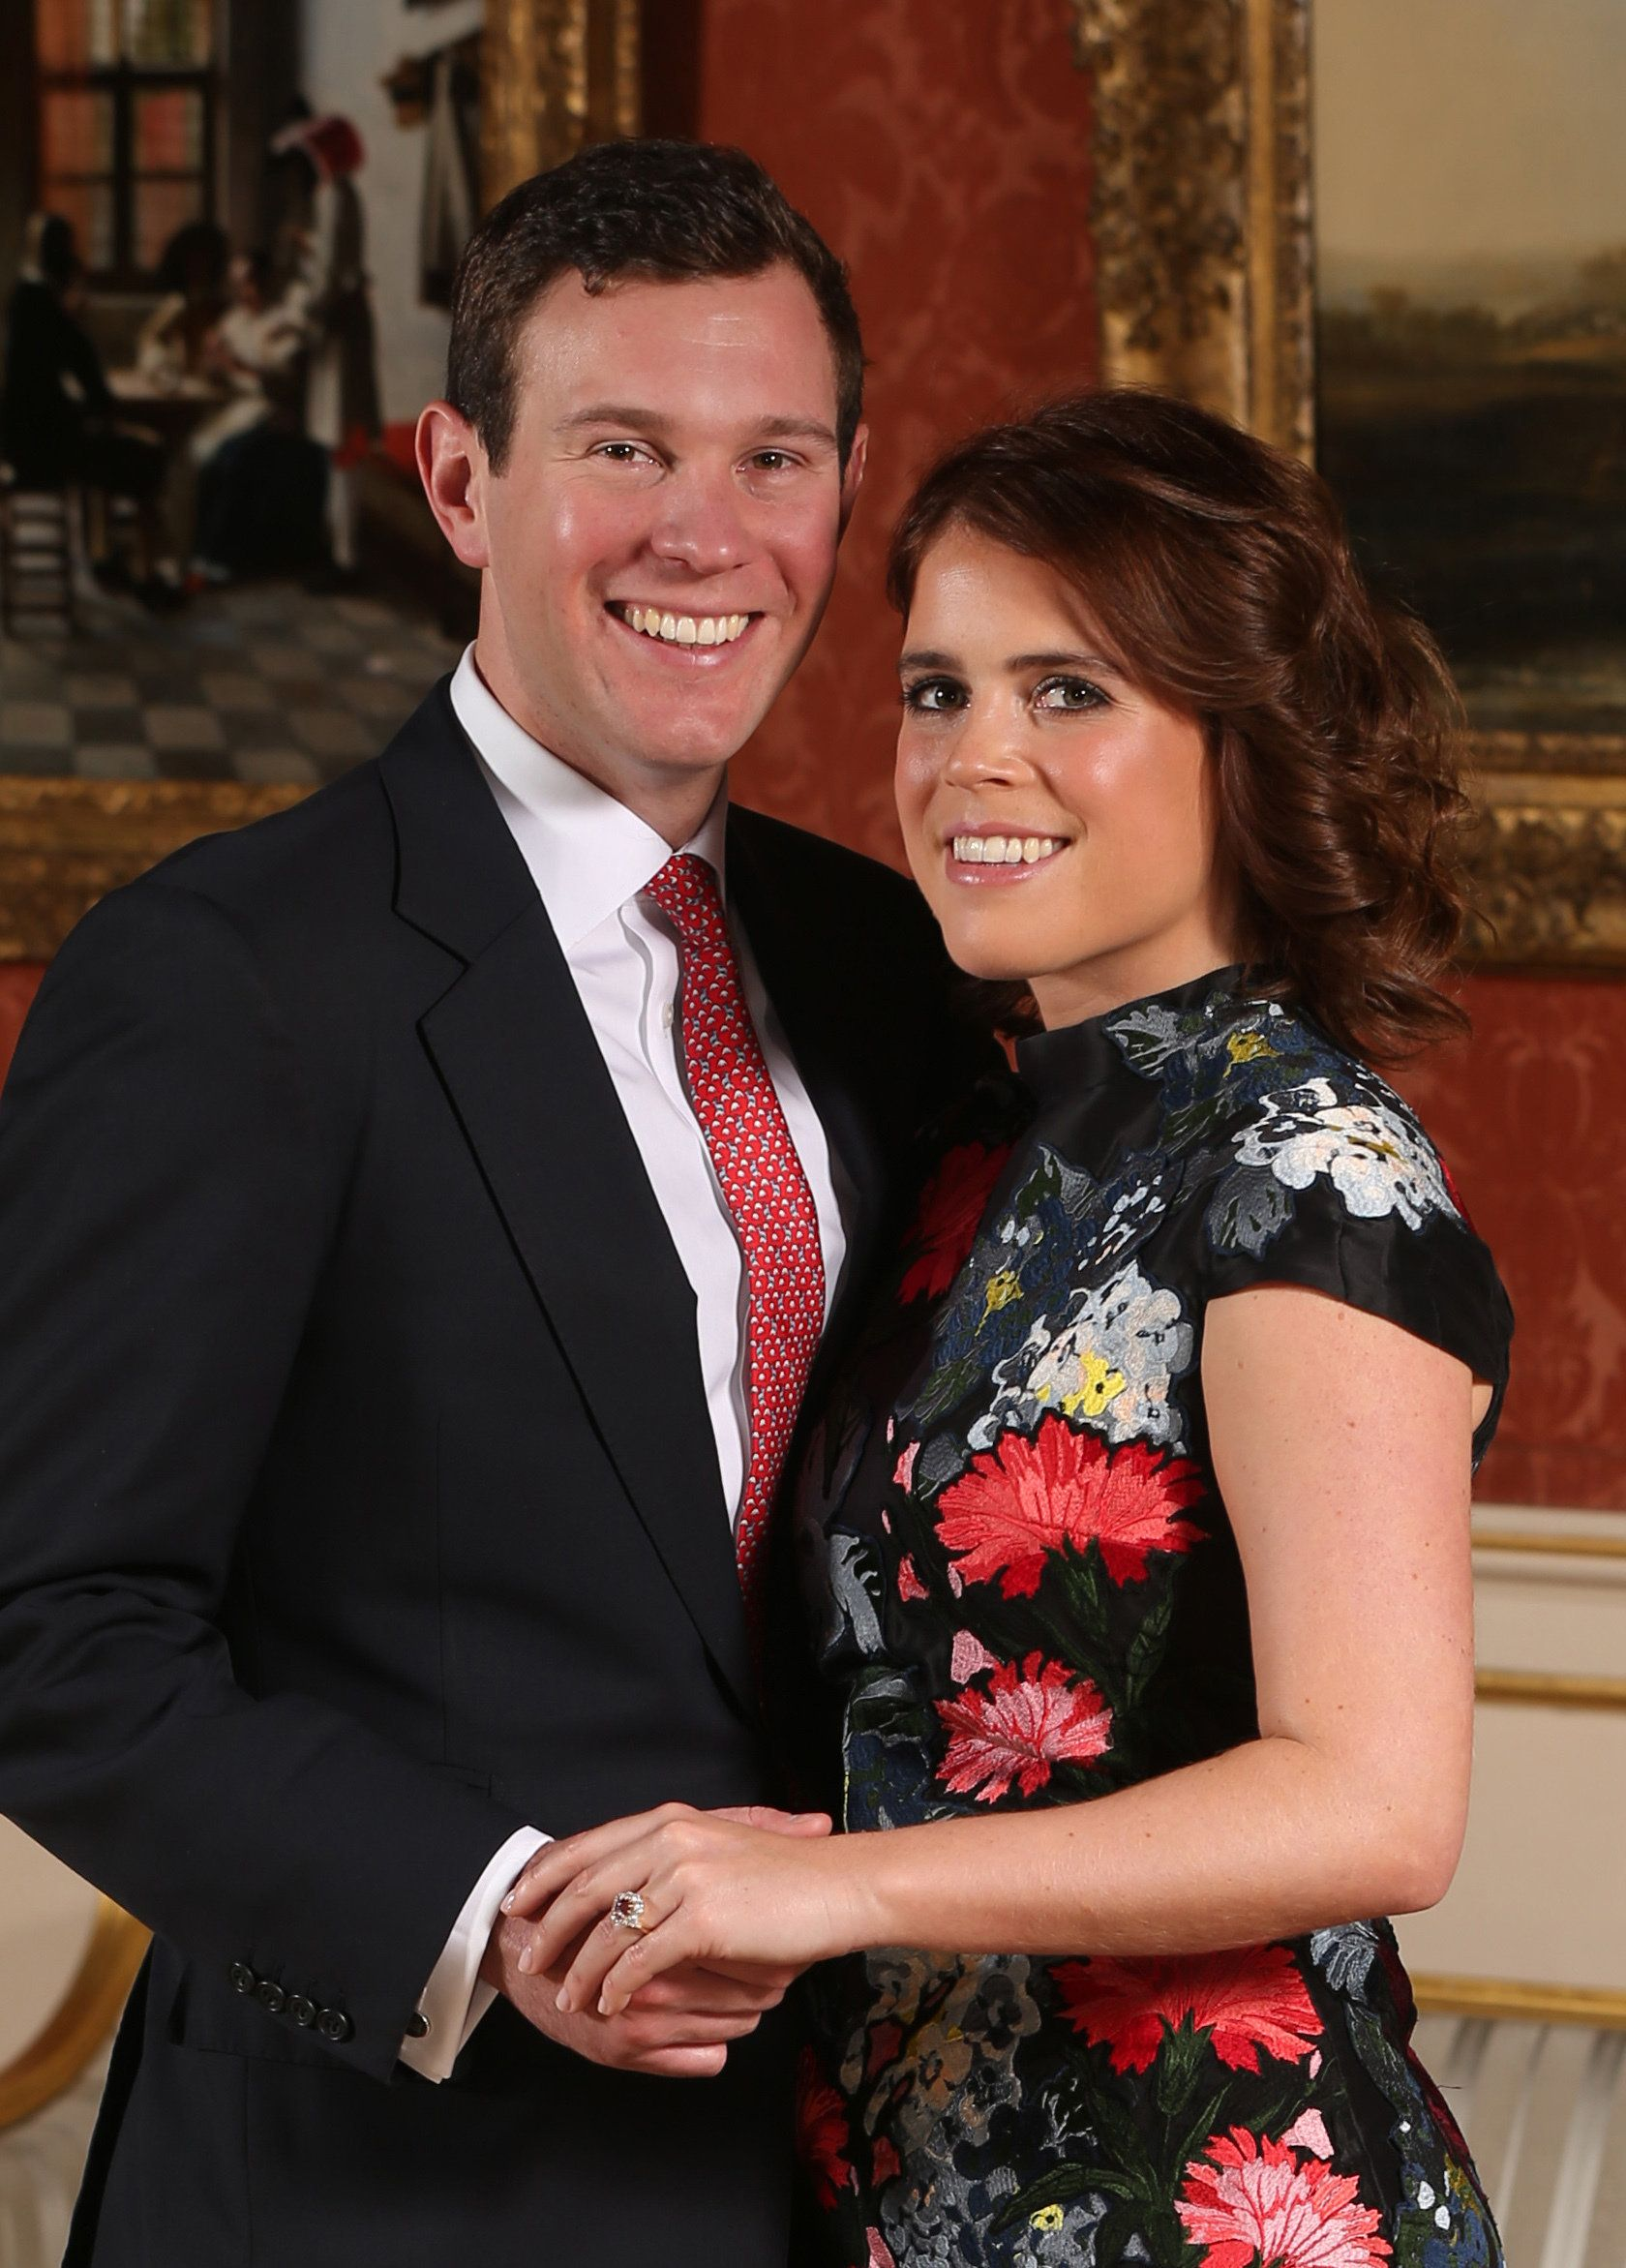 File photo dated 22/01/18 of Princess Eugenie and Jack Brooksbank in the Picture Gallery at Buckingham Palace in London after they announced their engagement. Their wedding ceremony will be broadcast live on ITV, Buckingham Palace has confirmed.